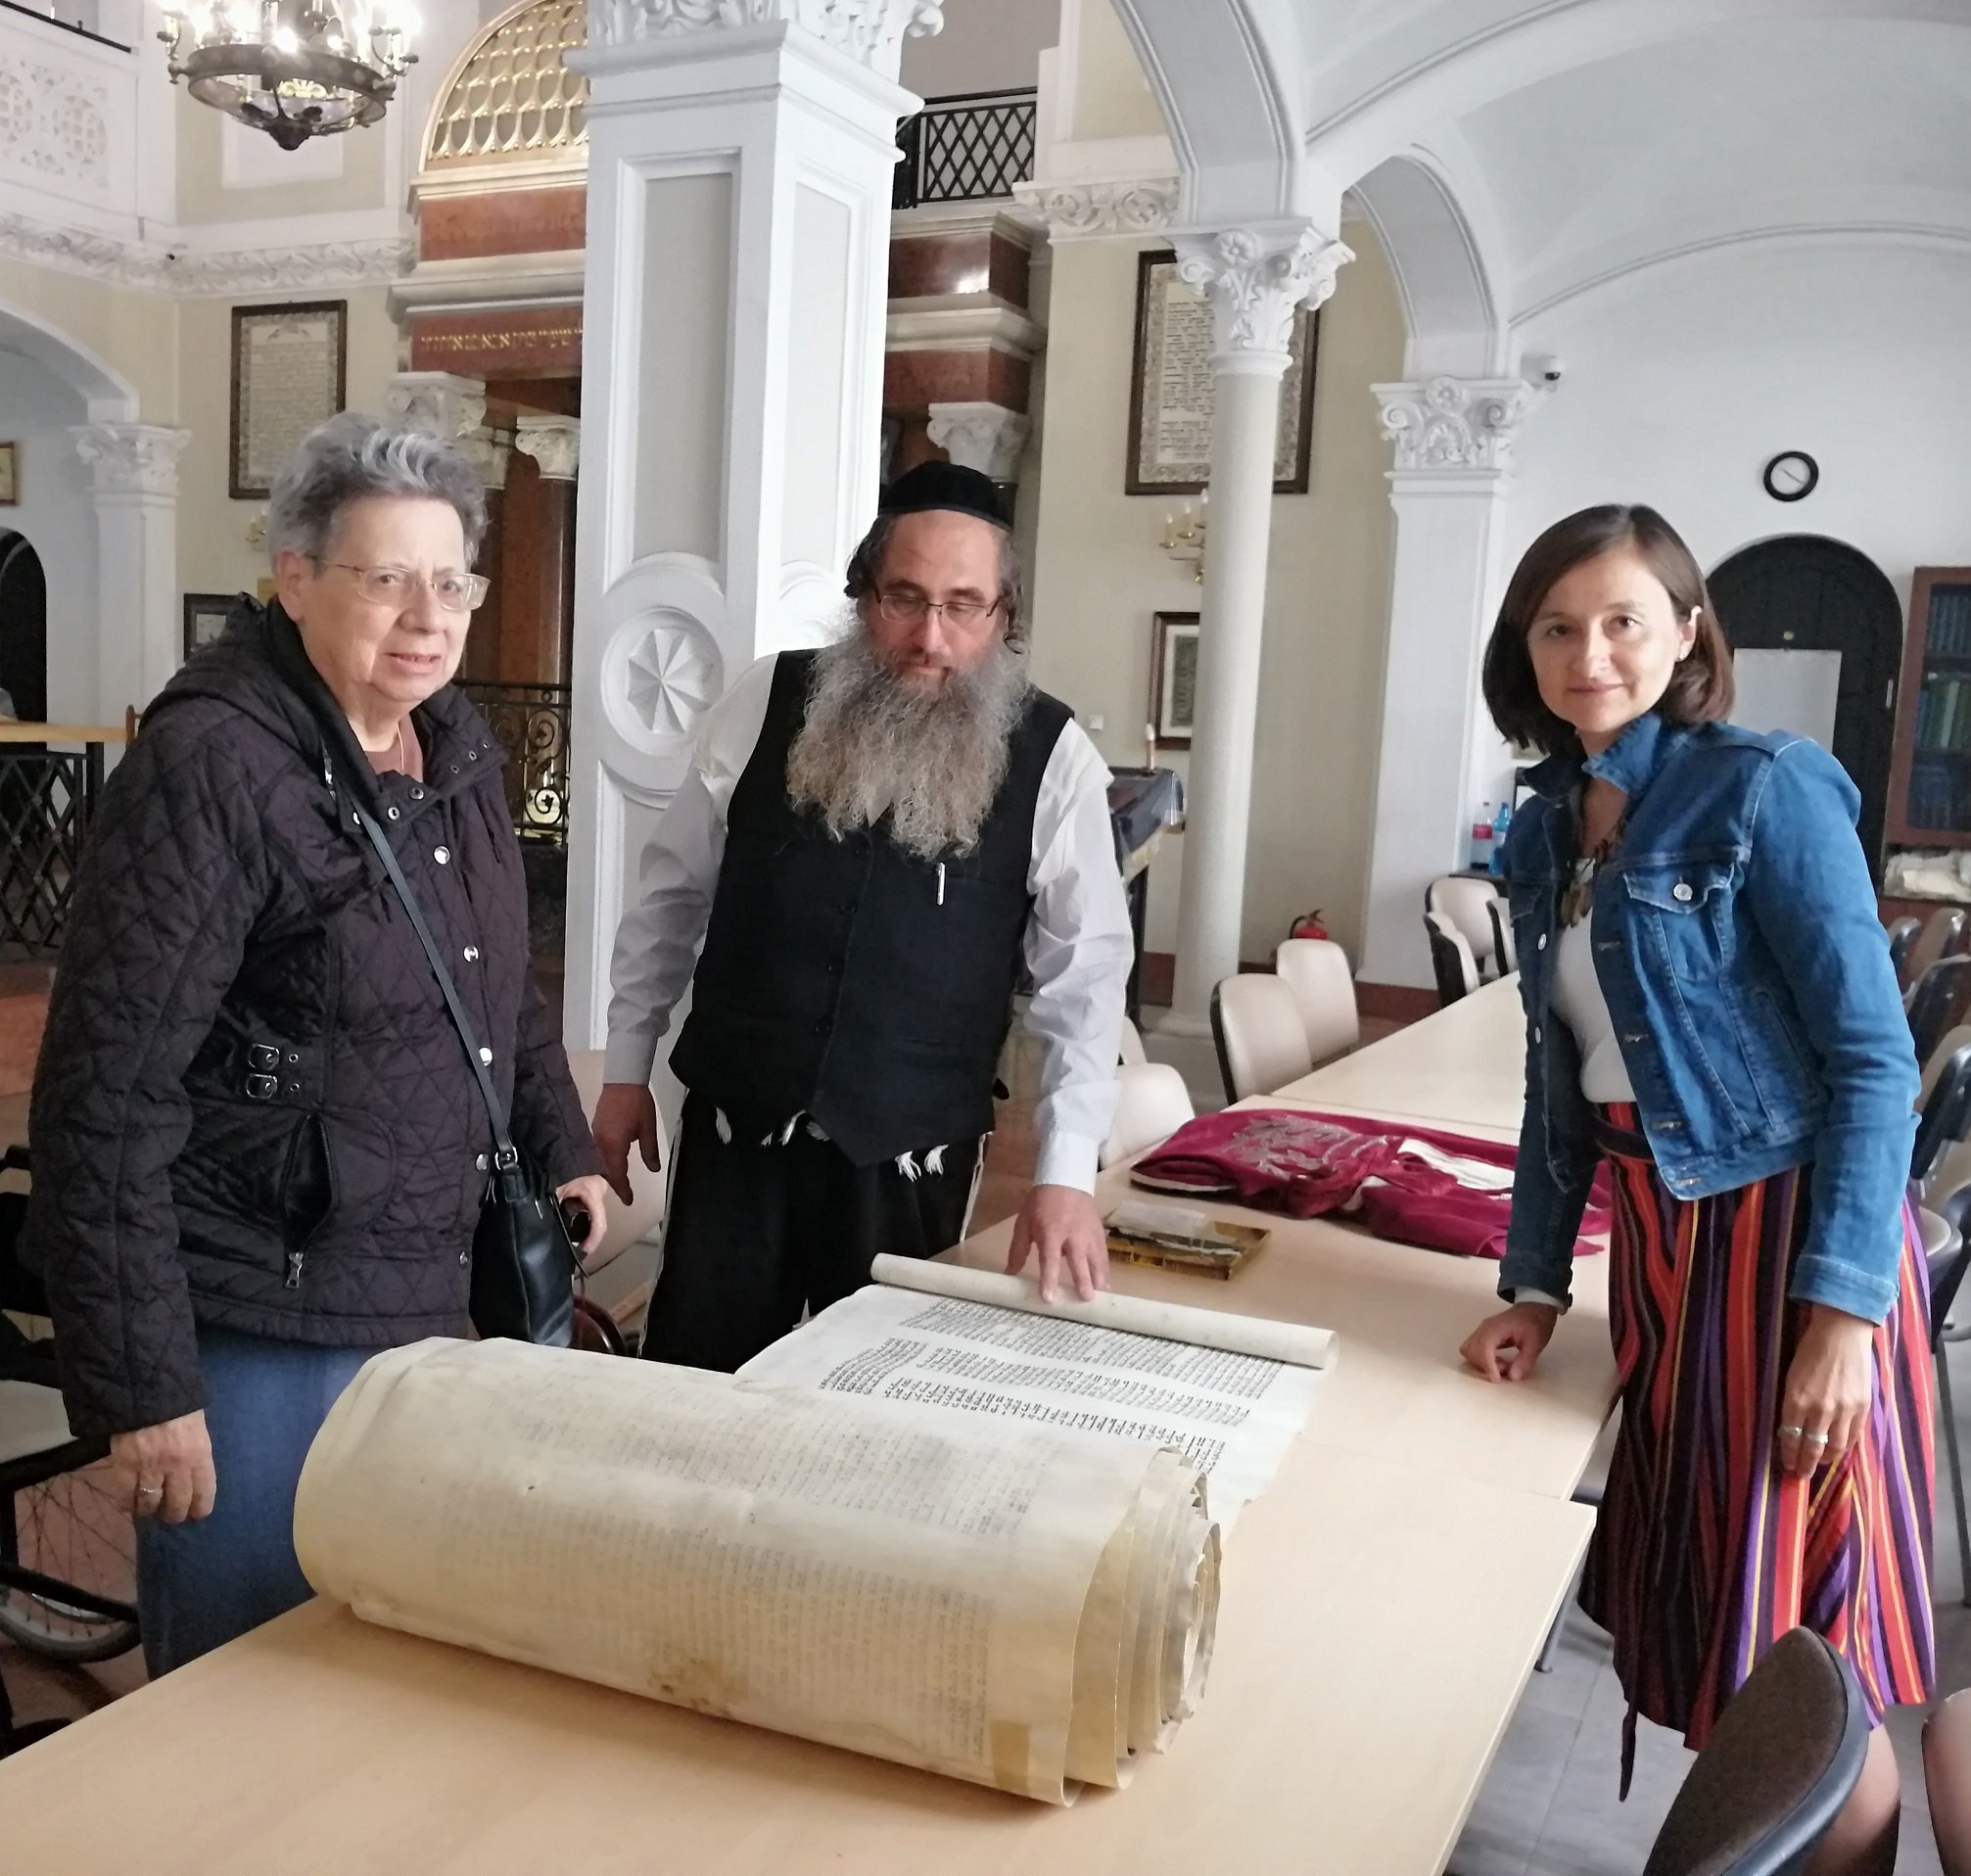 Step in Warsaw - City guide to Warsaw. An unexpected meeting with a sofer from Israel (a man who transcribes and repairs Torah) in the Nożyk Synagogue. My tourist also came from Israel. With Ruth and the sofer. Warsaw, 03.09.2019.